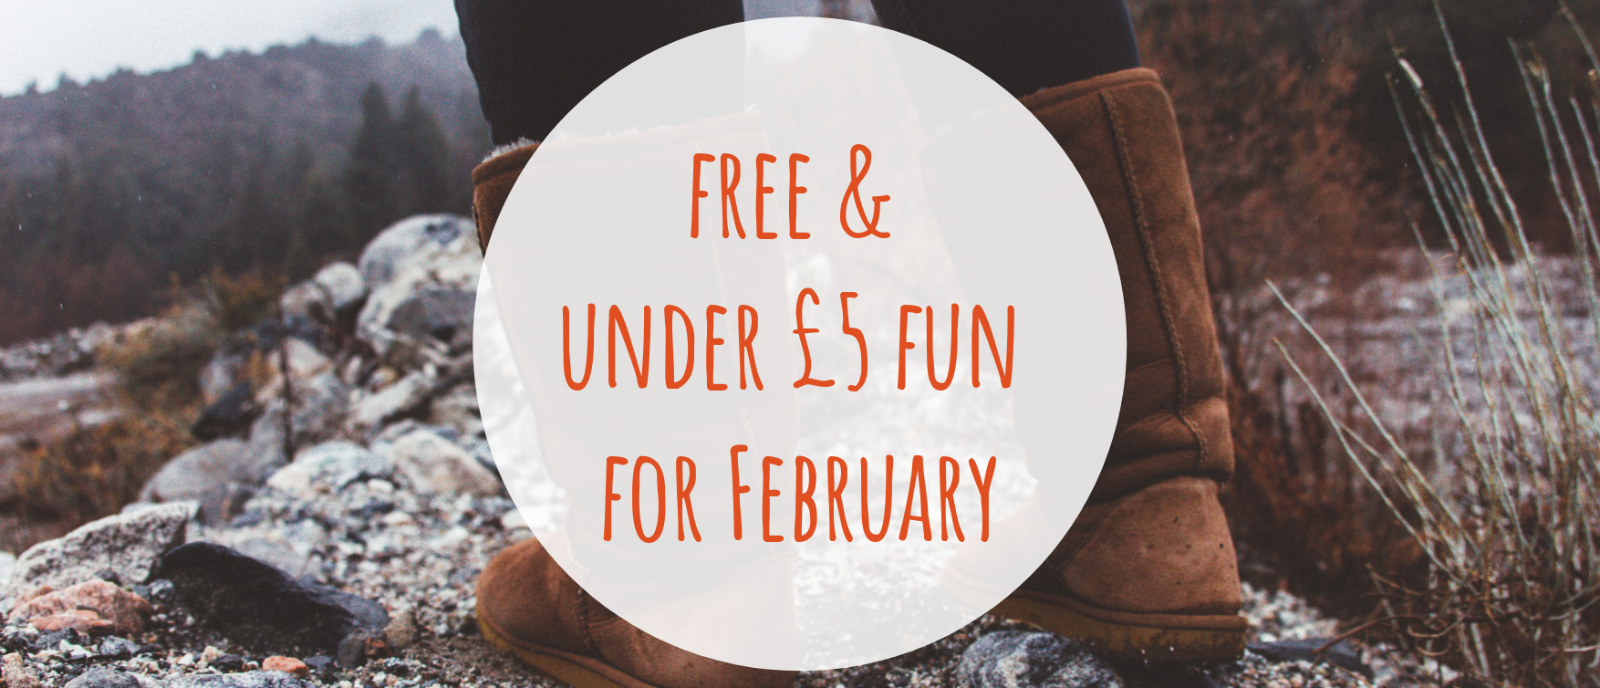 Click here for free & under £5 fun for February